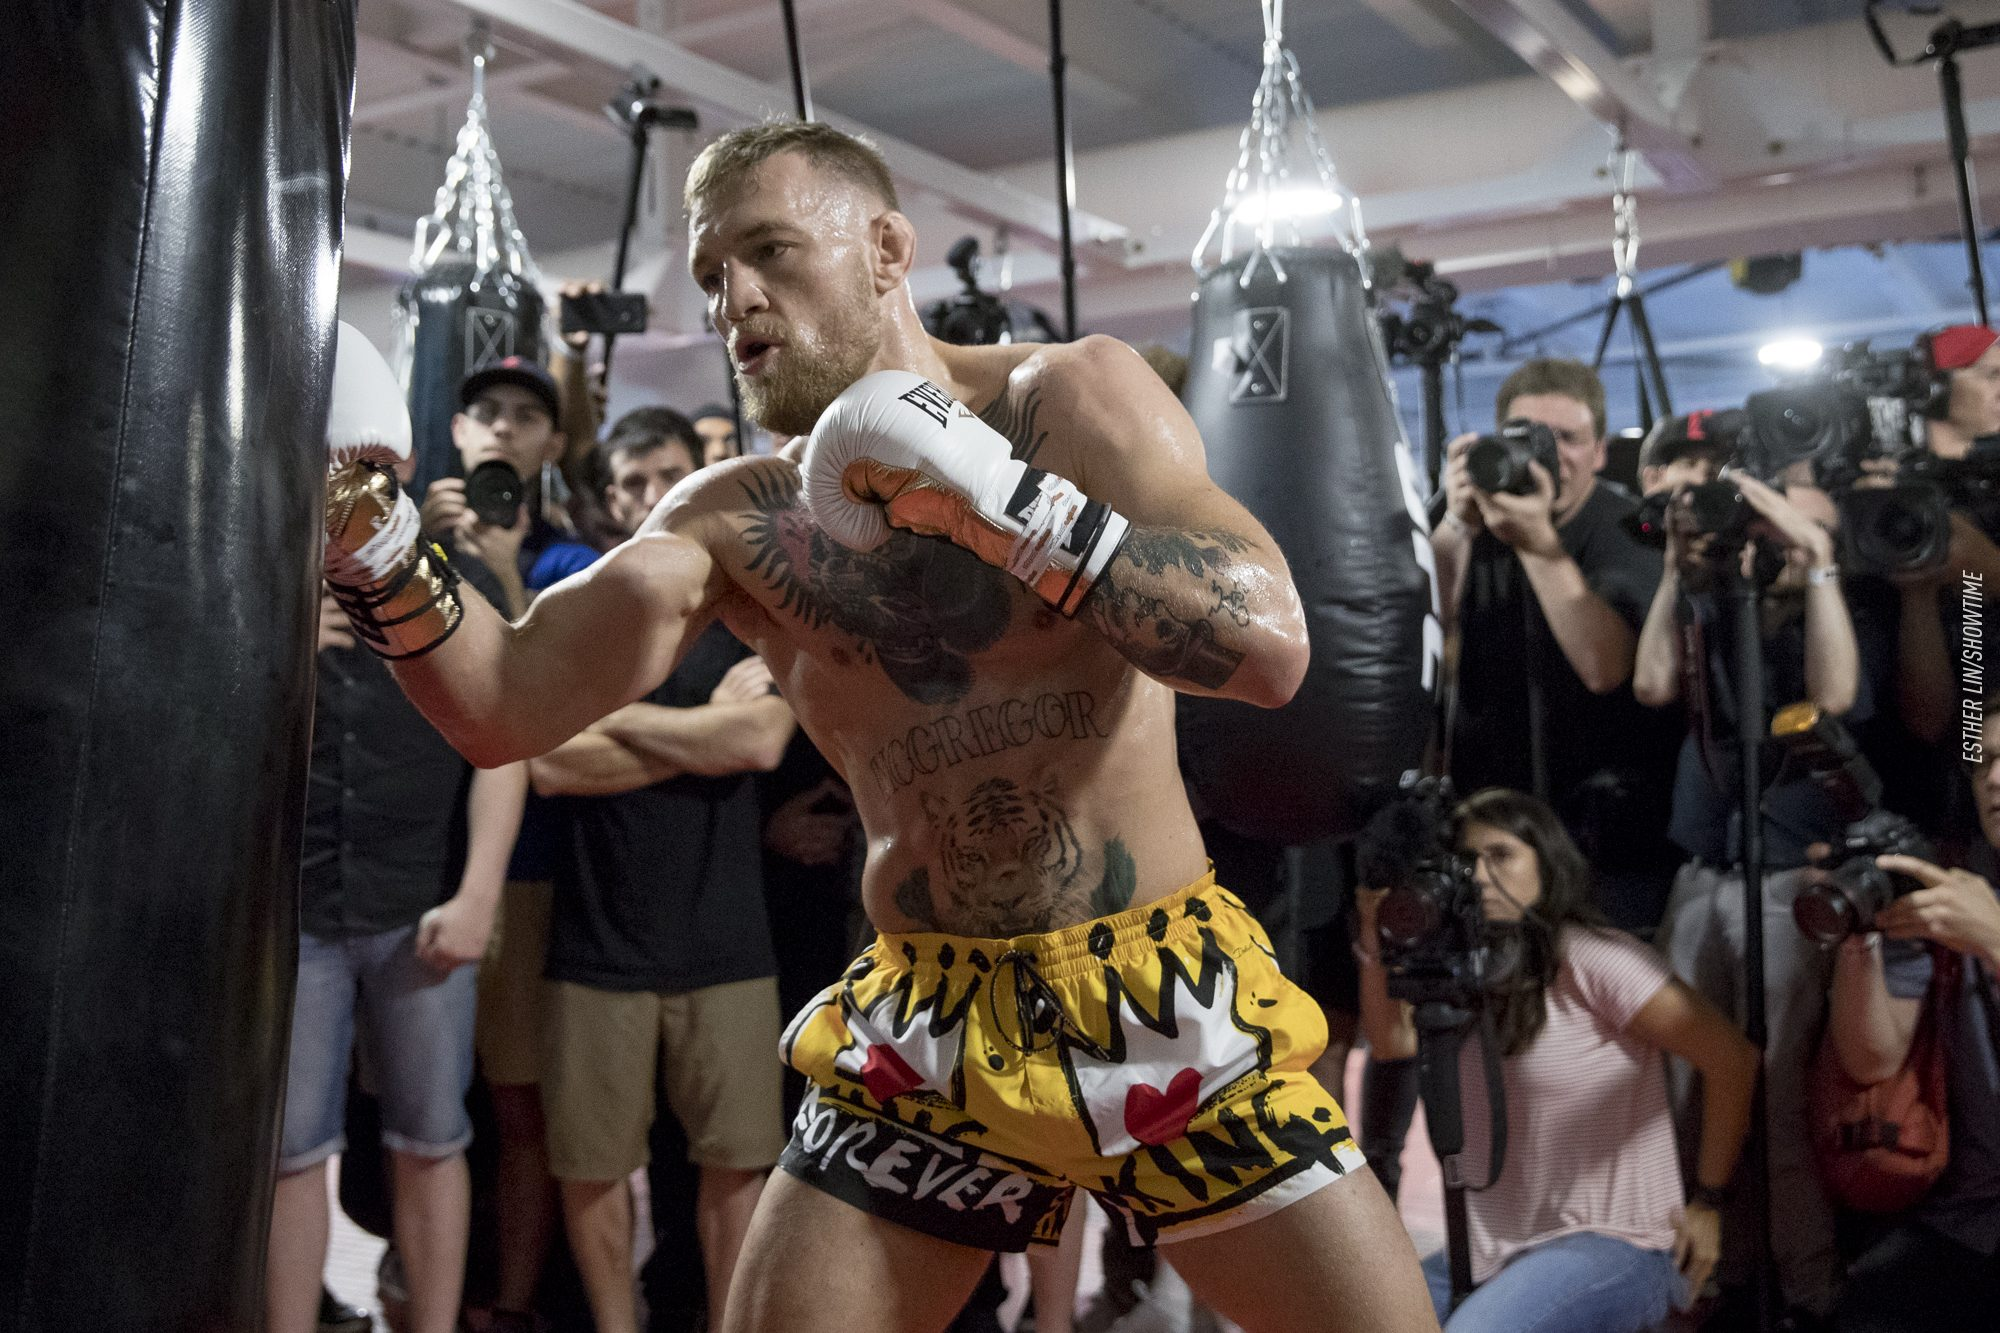 conor-mcgregor-wore-dolce-gabbana-ufc-performance-institute-in-las-vegas